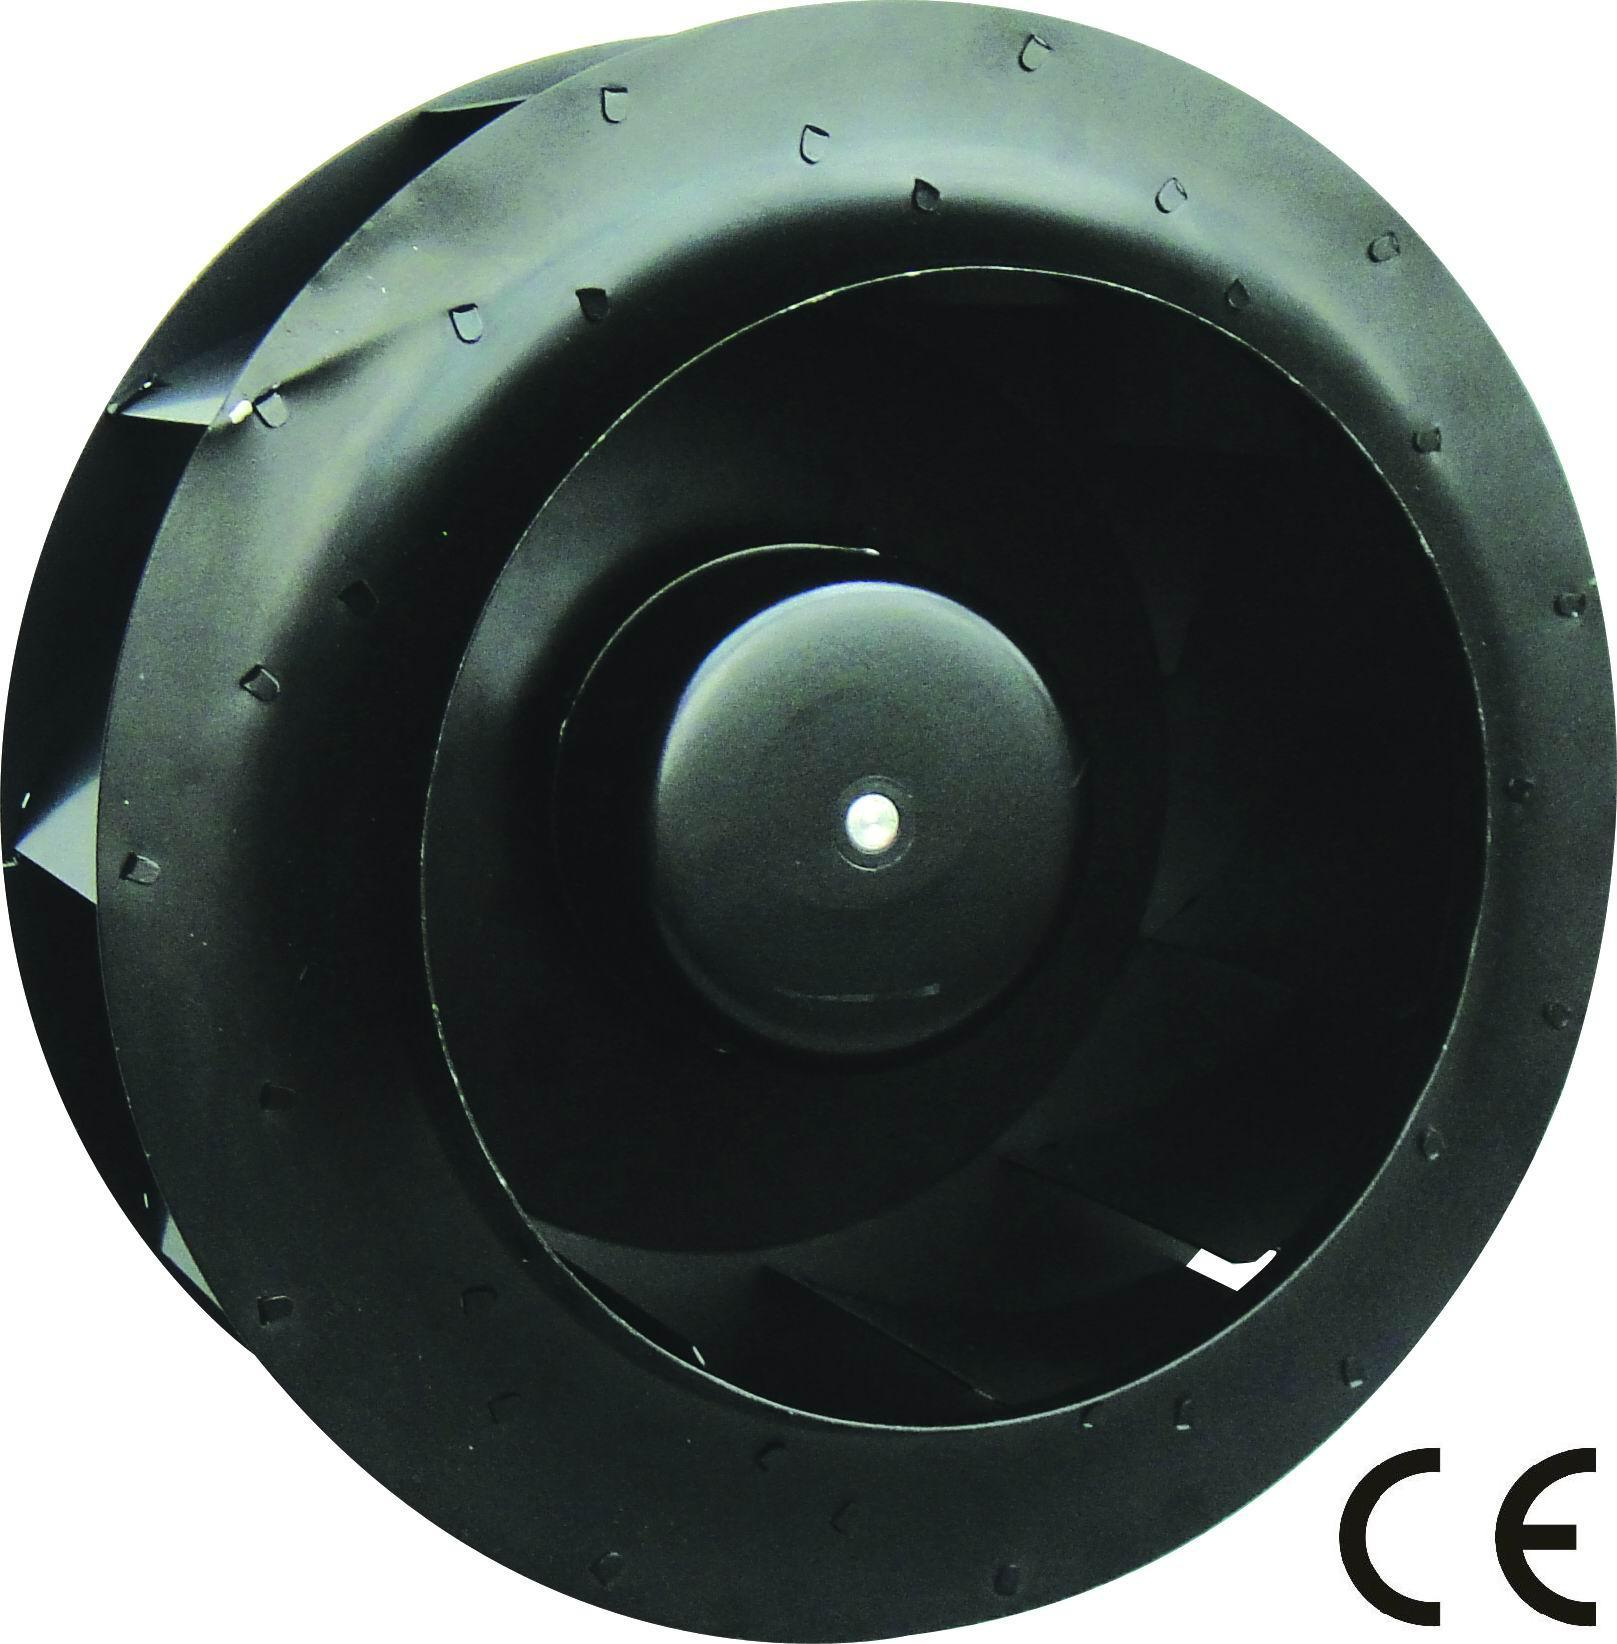 Centrifugal Fan 280mm China Centrifugal Exhaust Fans Exhaust Fans #314661